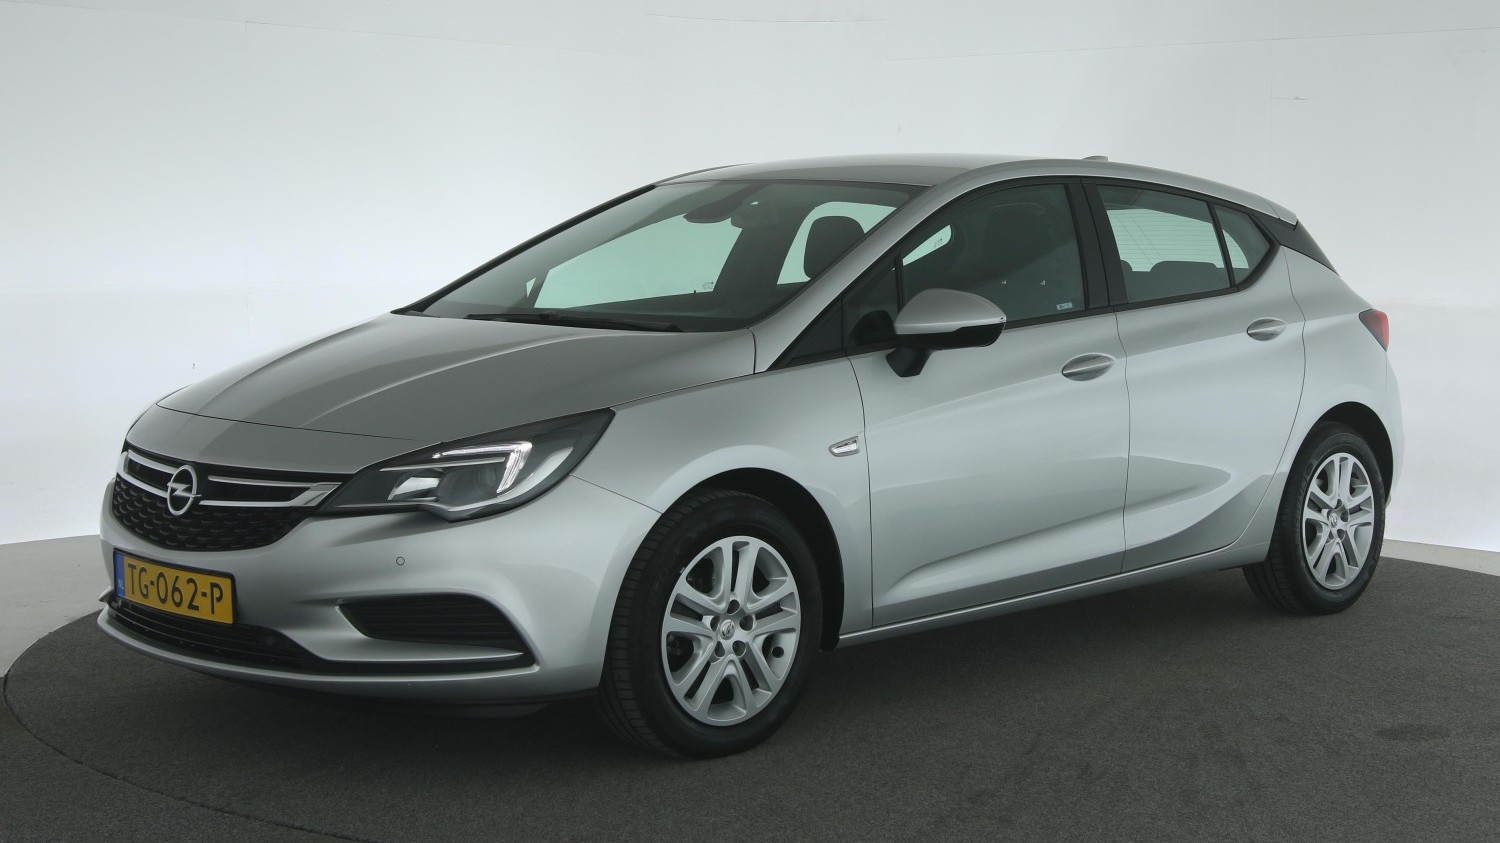 Opel Astra Hatchback 2018 TG-062-P 1